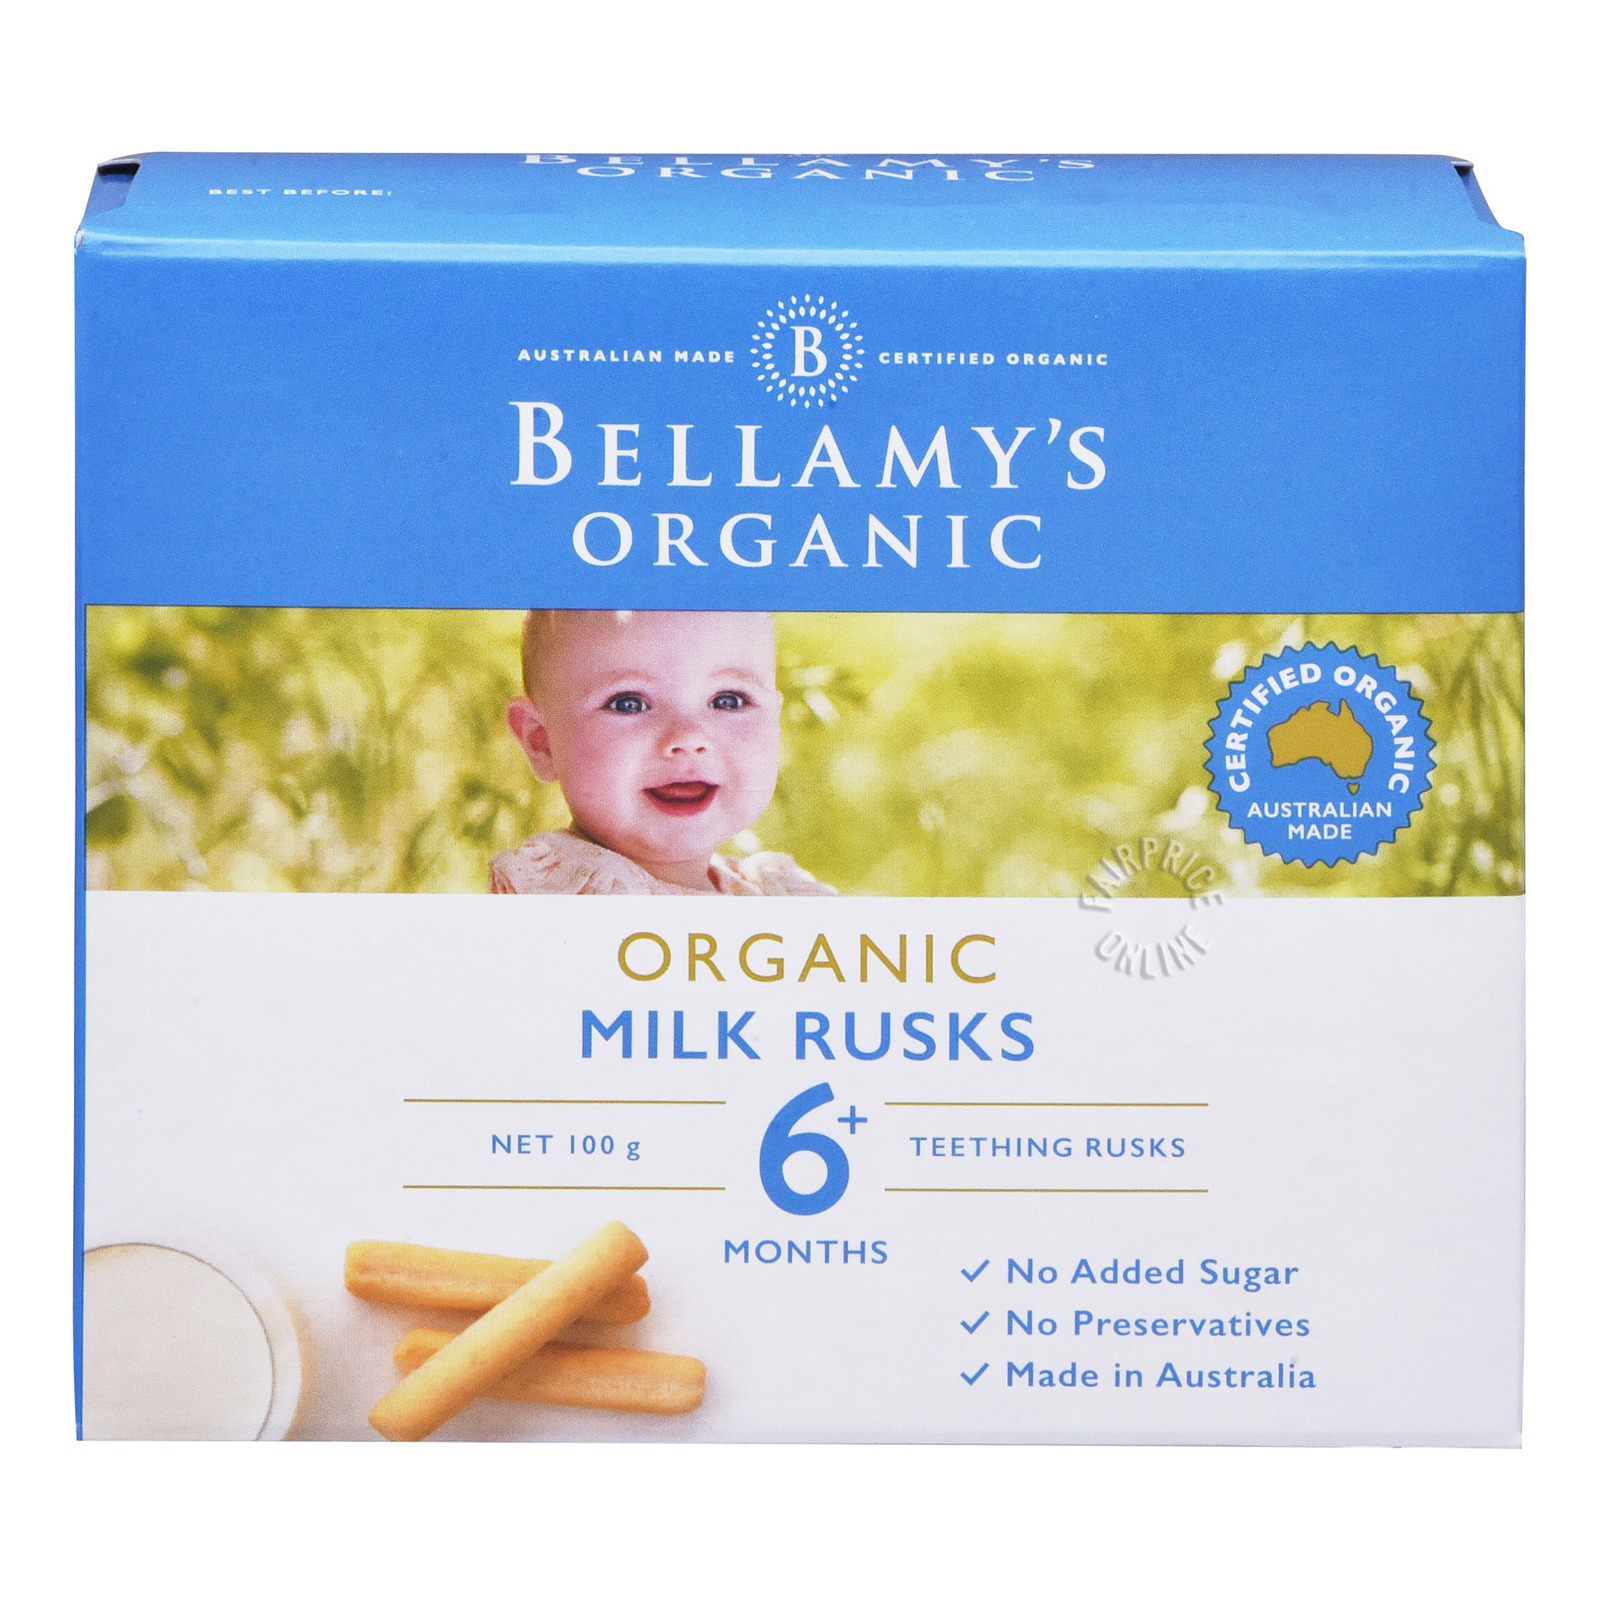 Bellamy's Organic Baby Milk Rusks